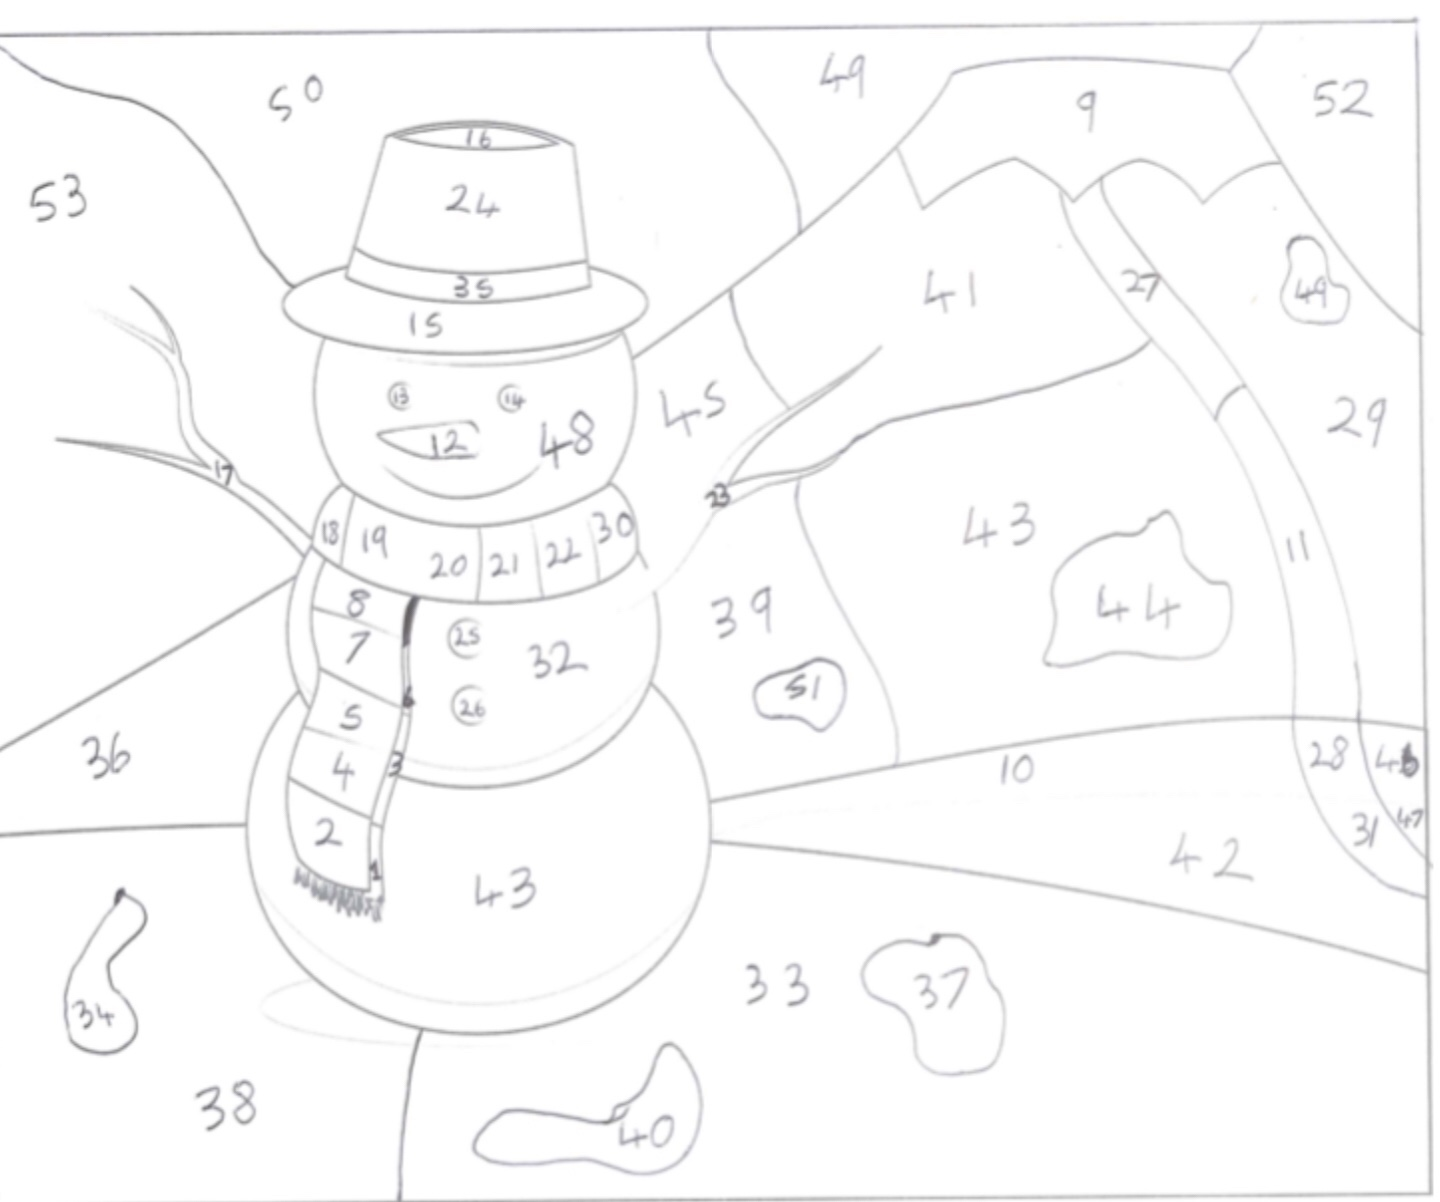 A Level Christmas Calculated Colouring Mathematicsandcoding